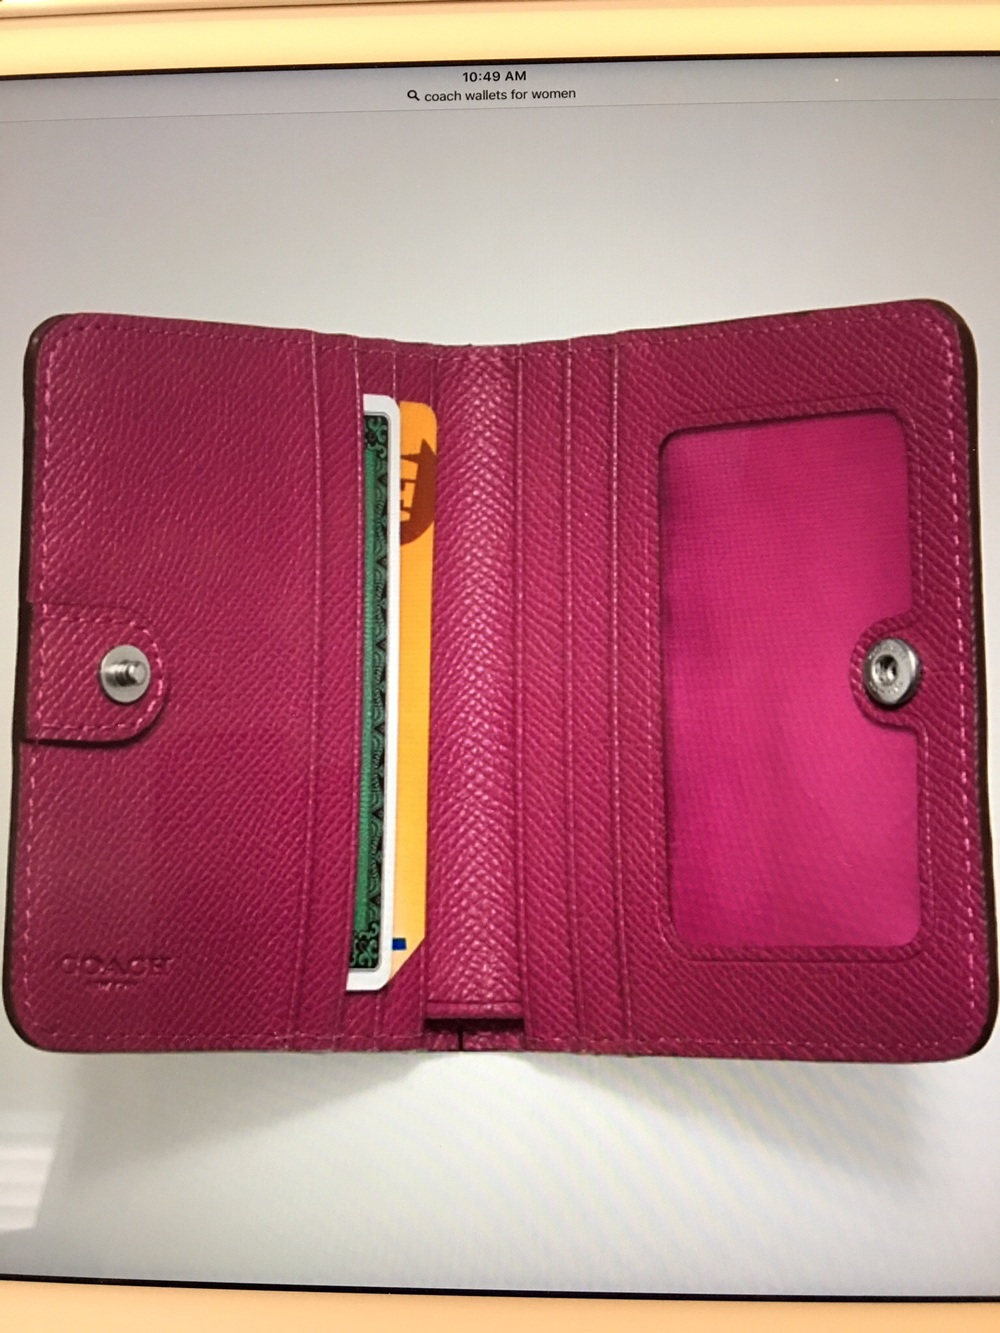 Unsecured physical wallet